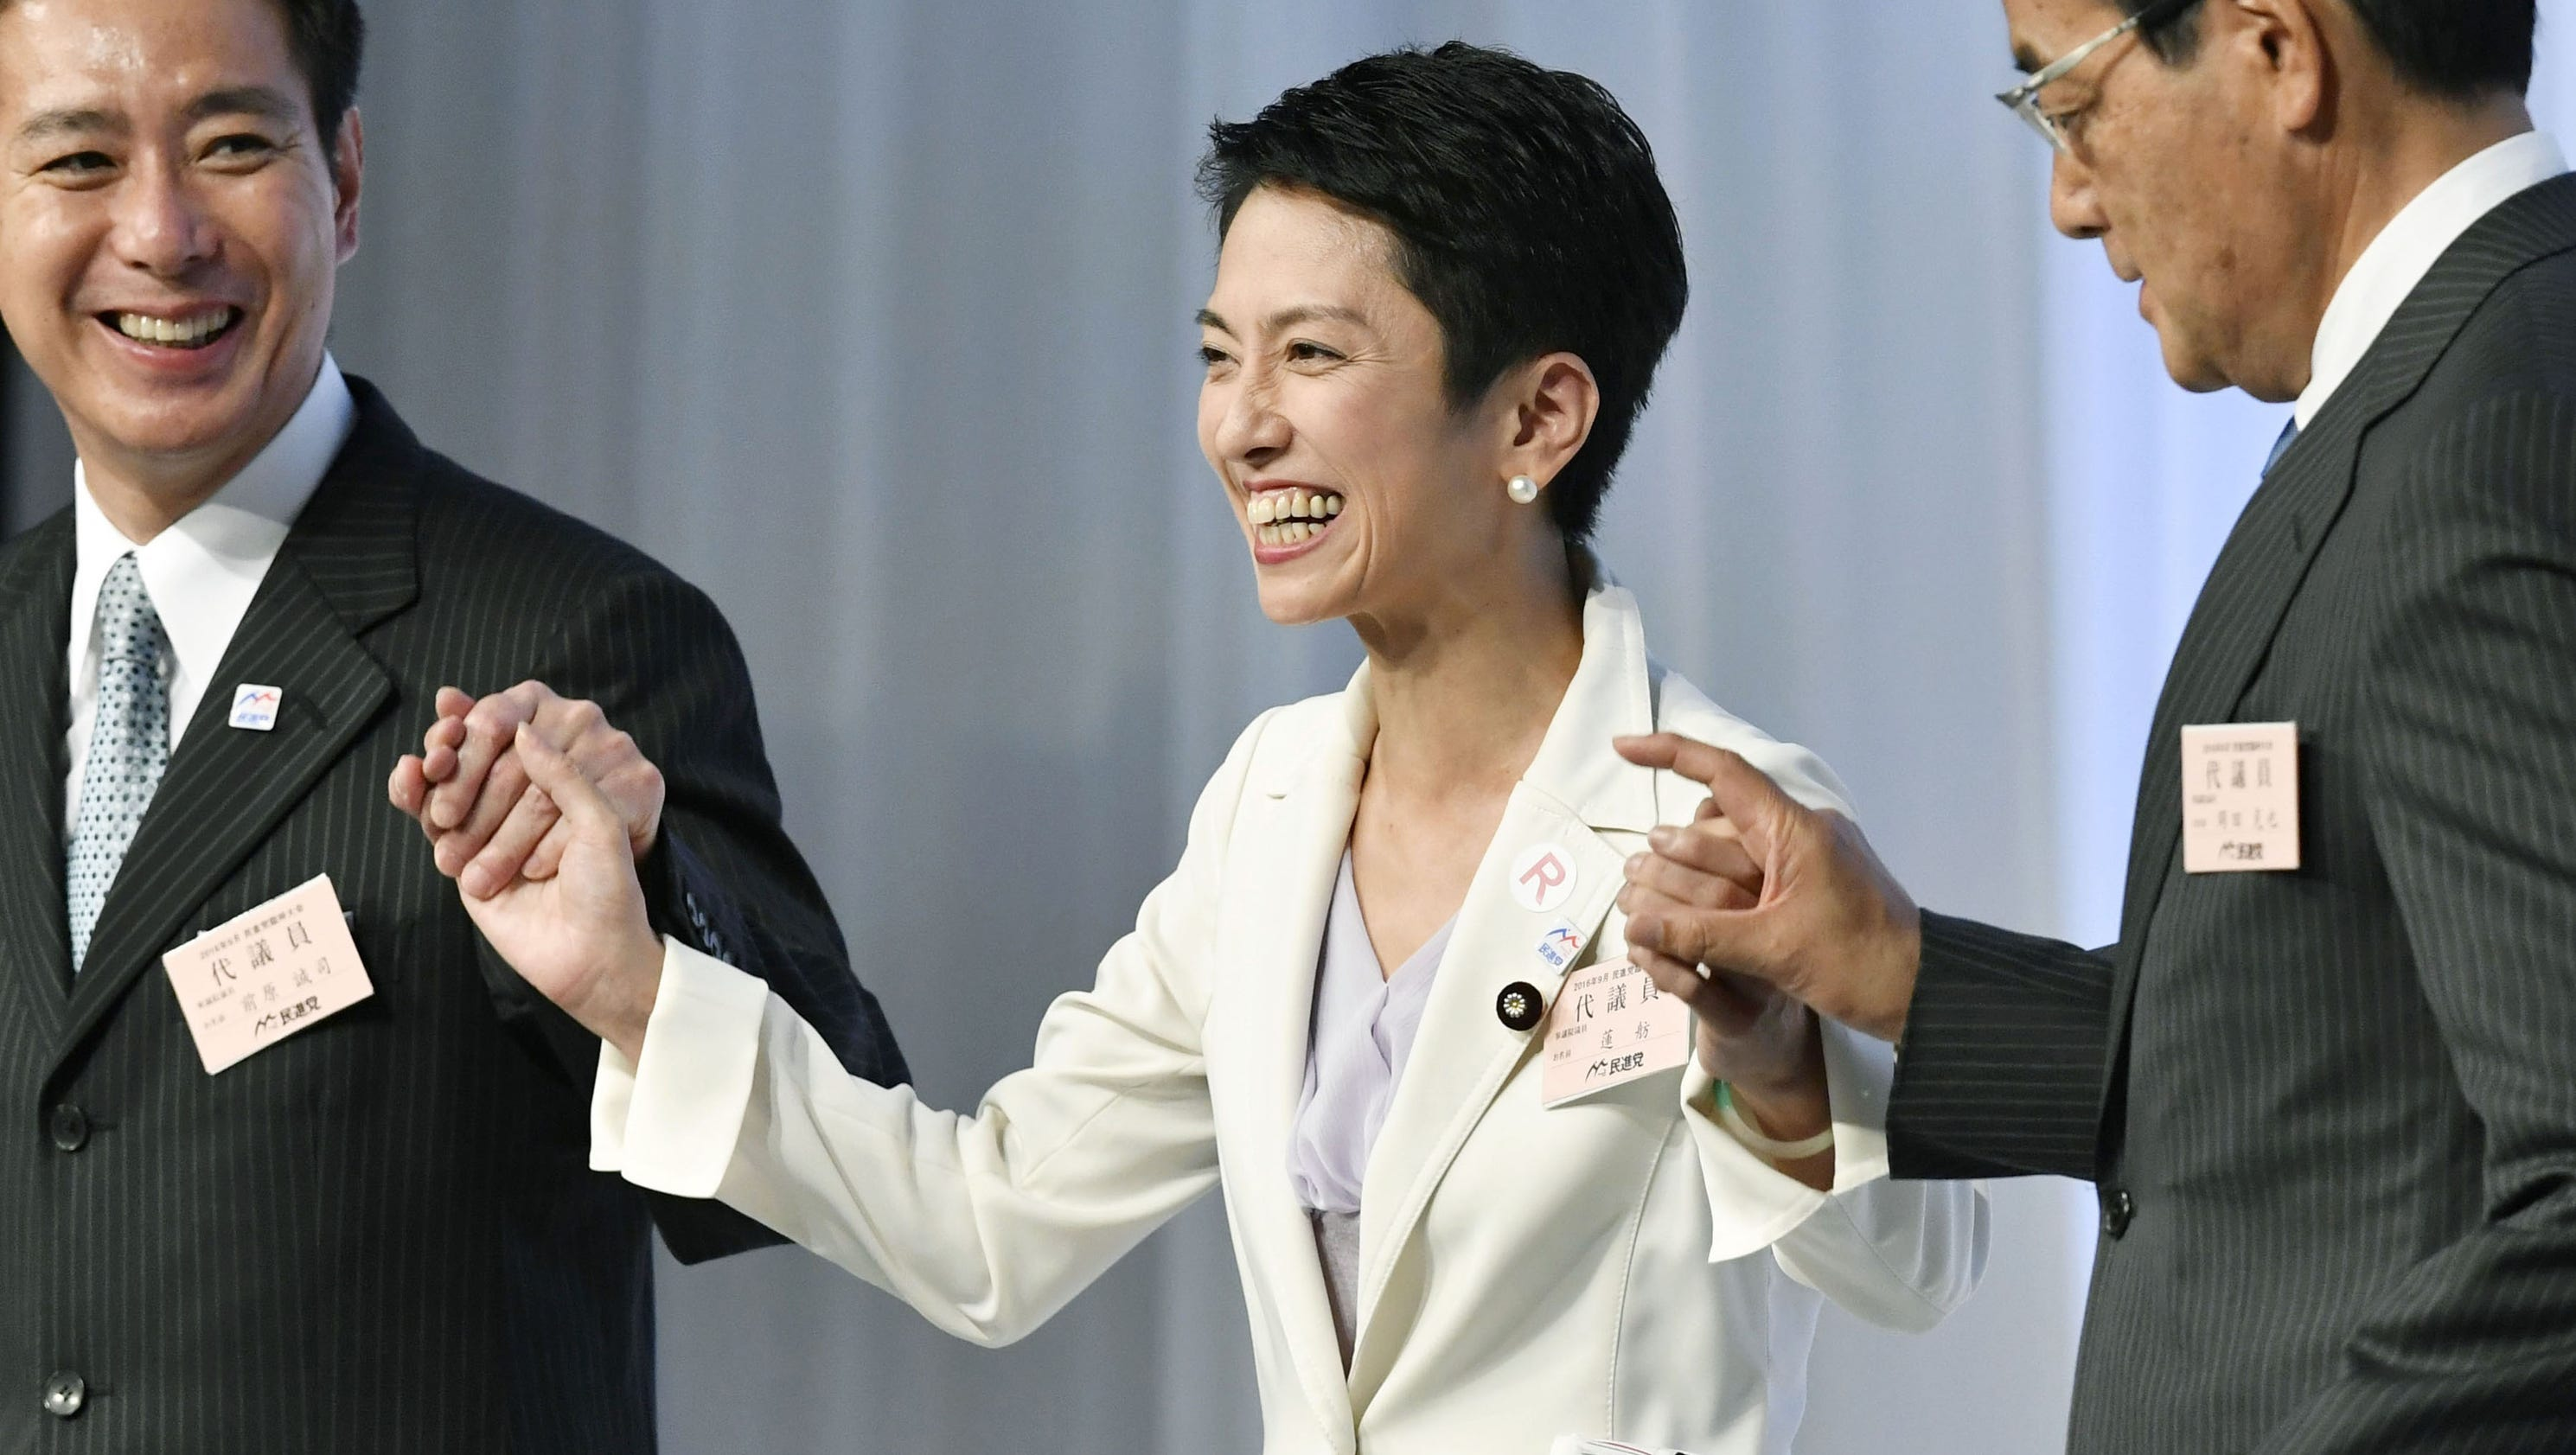 Women gain a new political leadership post in Japan